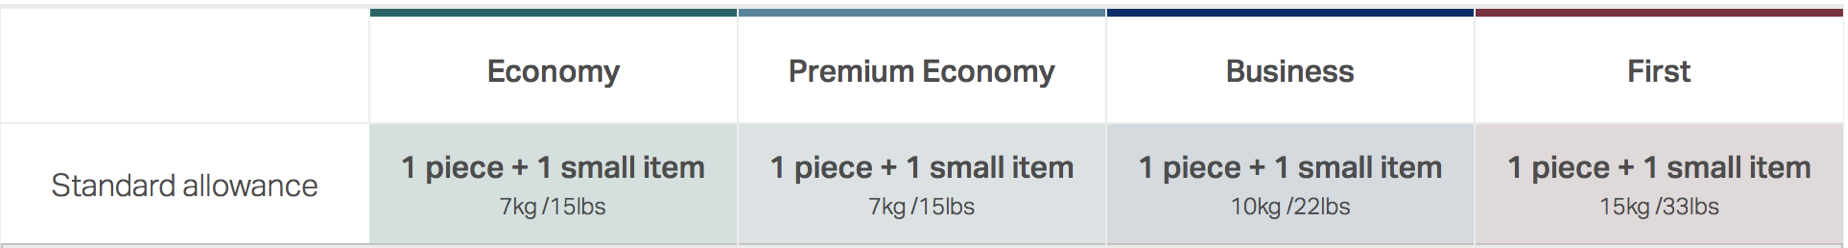 Cabin baggage allowance for CX Flights (taken from CX website)